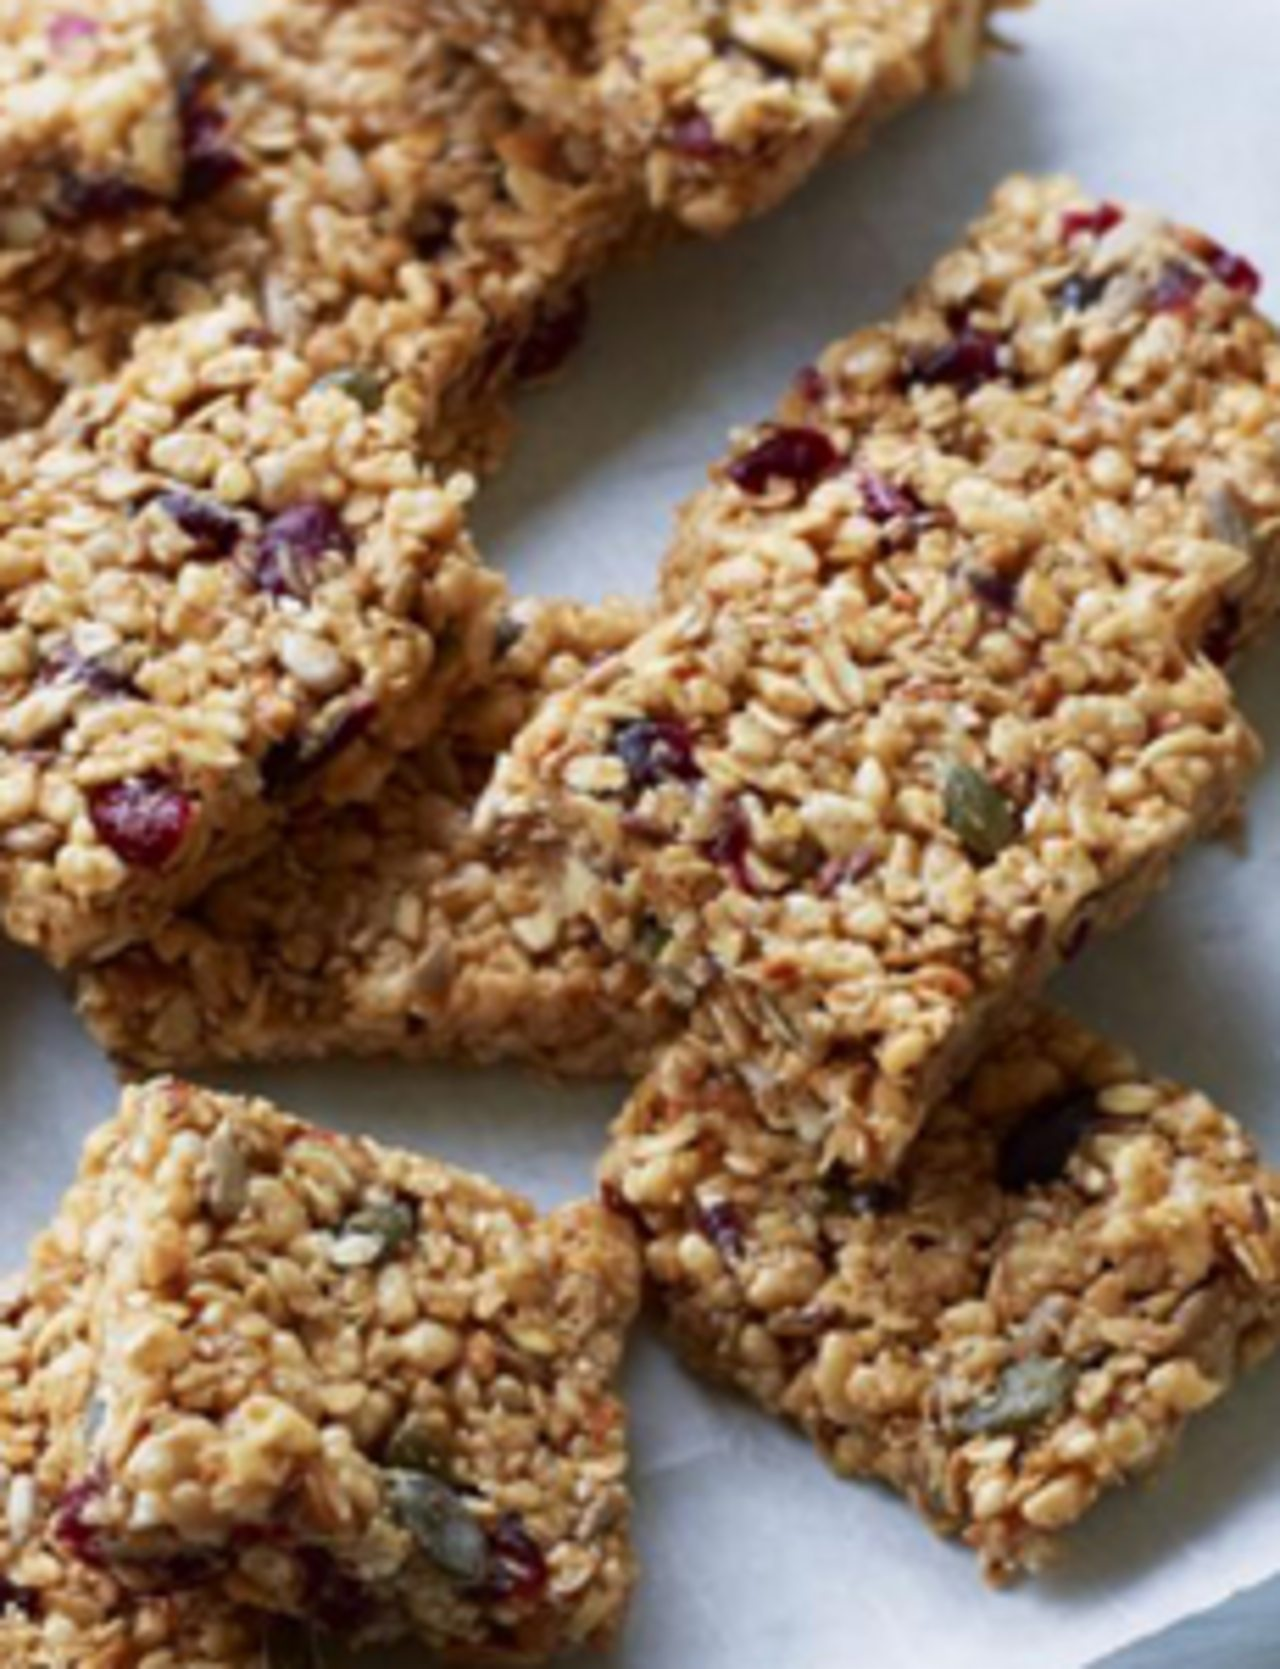 Resist temptation with these healthy snacks